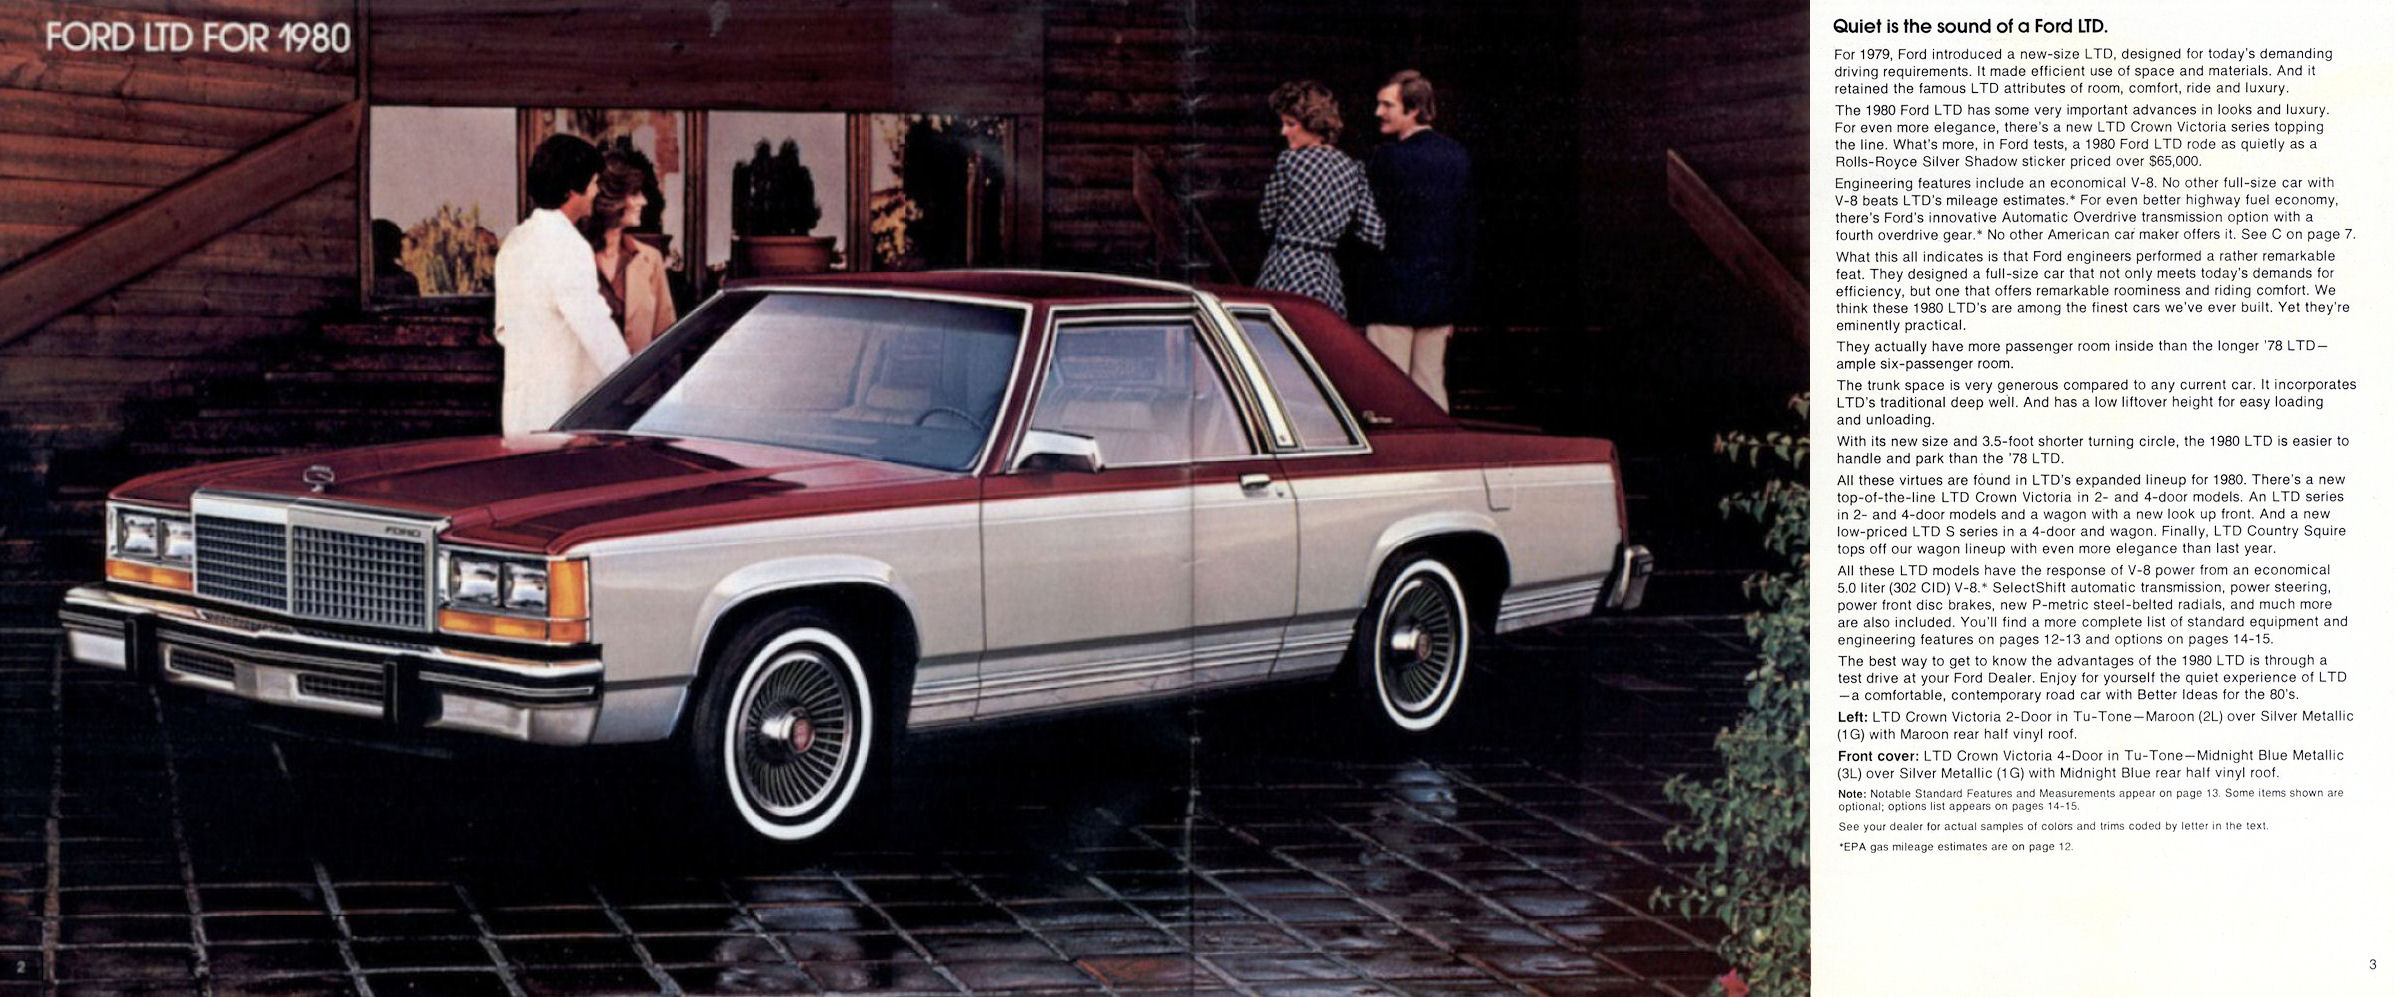 1980 Ford Ltd Brochure Rev Crown Victoria Full Size Image